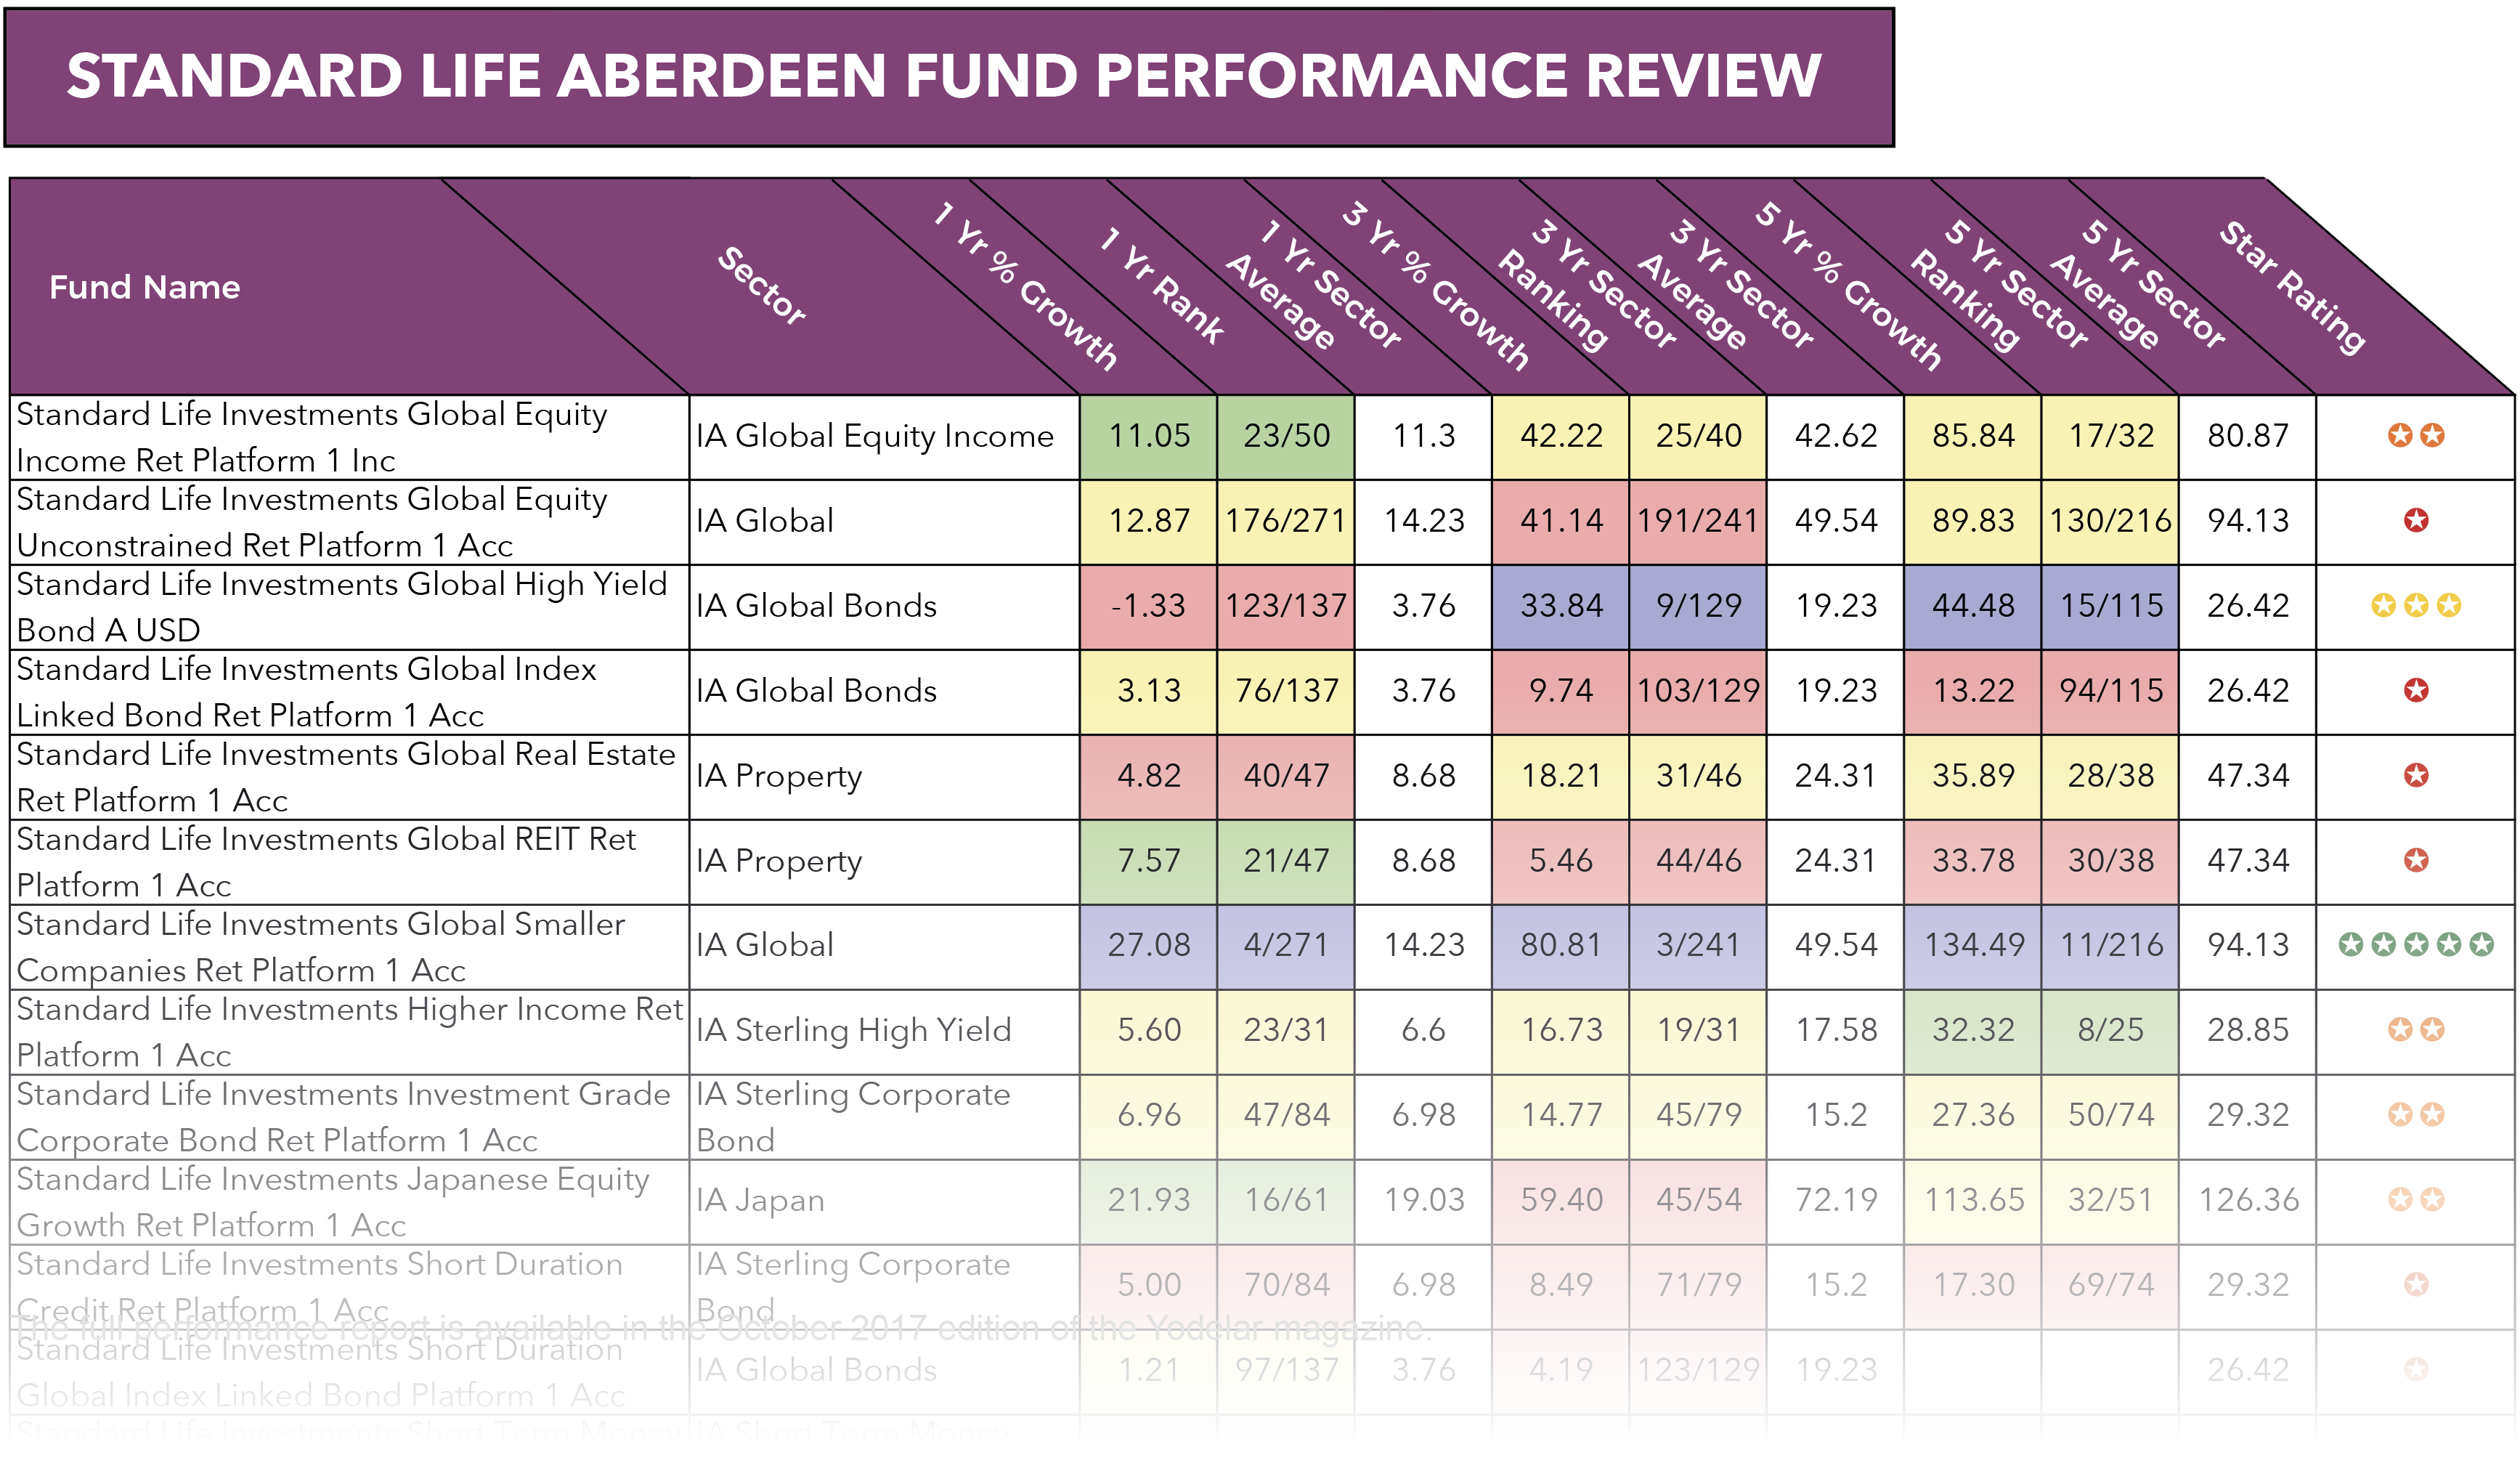 Standard life aberdeen fund performance sample.png